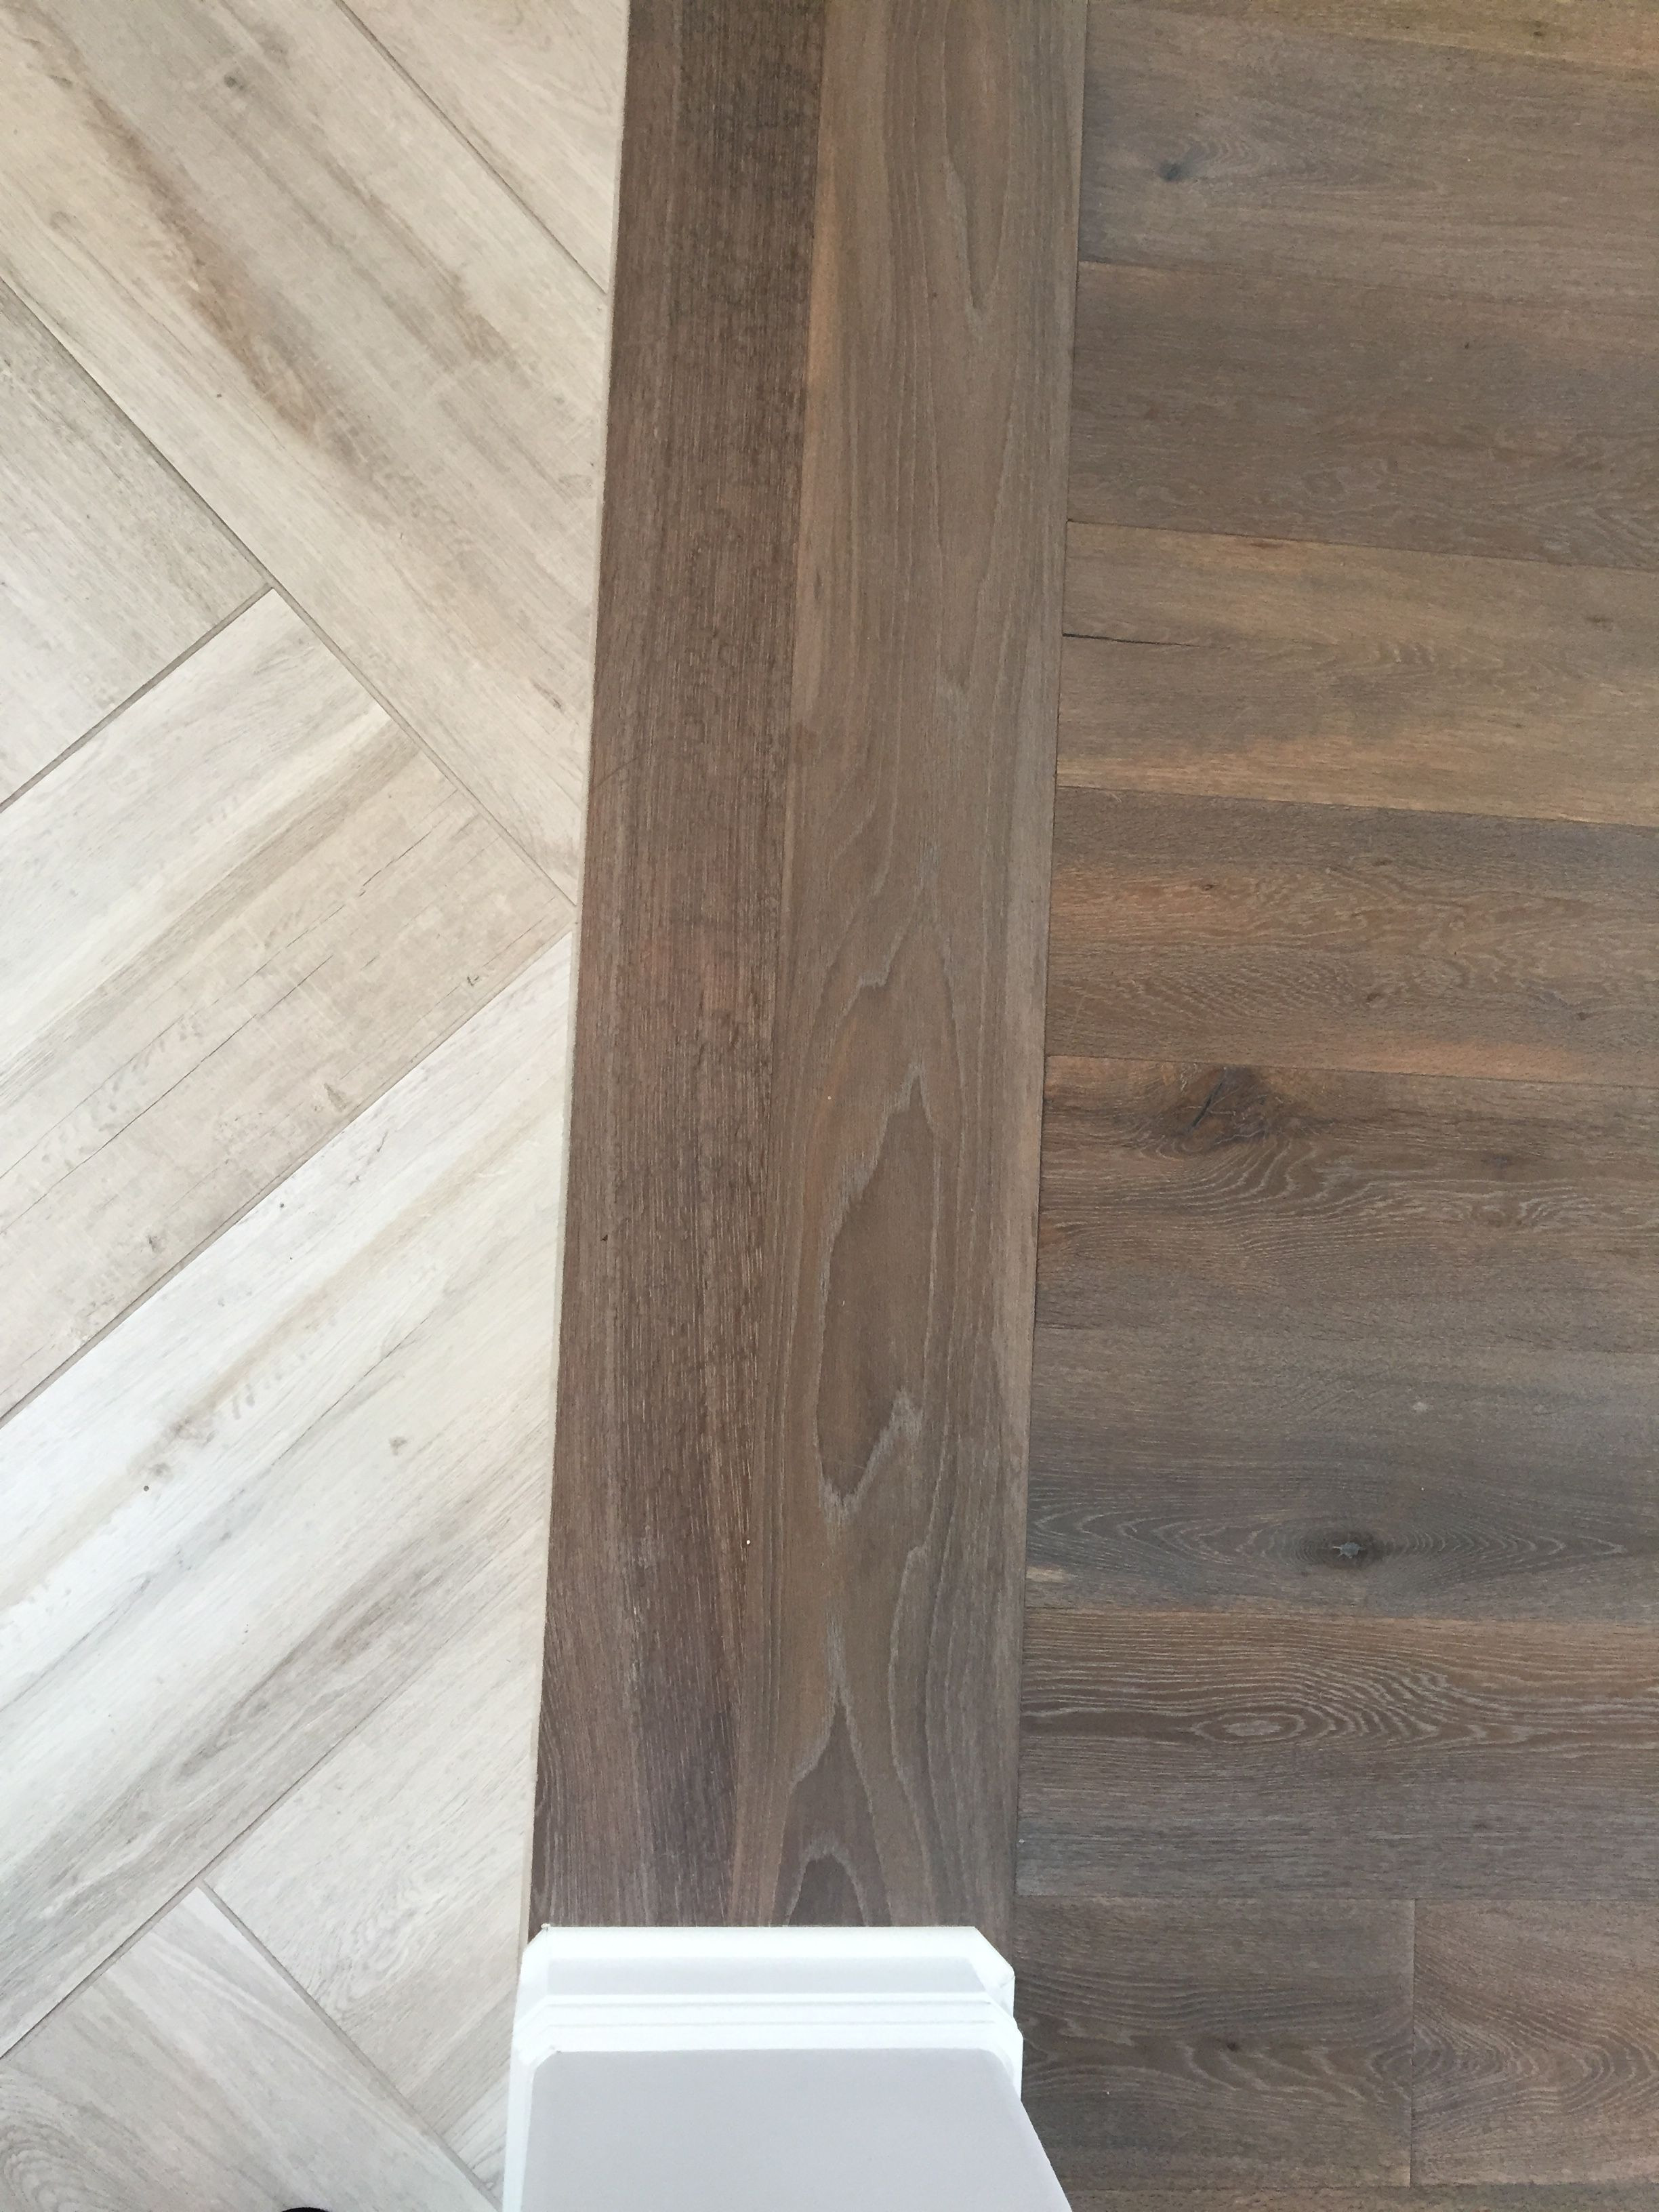 dark hardwood floors with oak cabinets of floor transition laminate to herringbone tile pattern model within floor transition laminate to herringbone tile pattern herringbone tile pattern herringbone wood floor